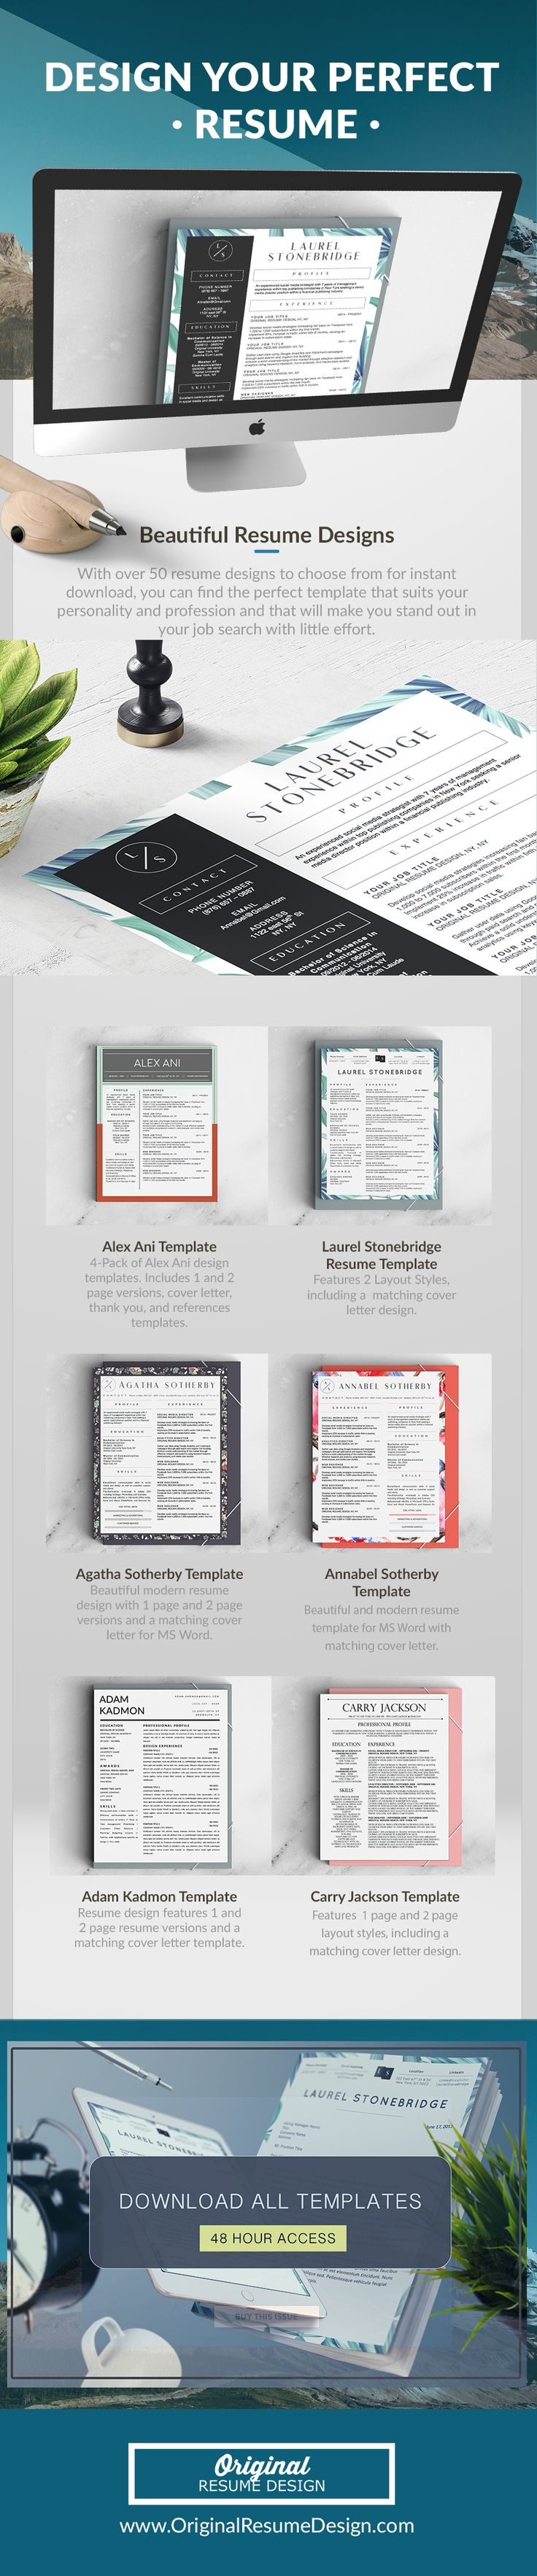 Amazing 010 Editor Templates Big 1 Page Resume Templates Rectangular 1 Year Experienced Java Resume 1.25 Button Template Youthful 10 Best Resume Services Gray10 Business Card Template 61 Best Images About CV Designs On Pinterest | Cool Resumes, Cover ..